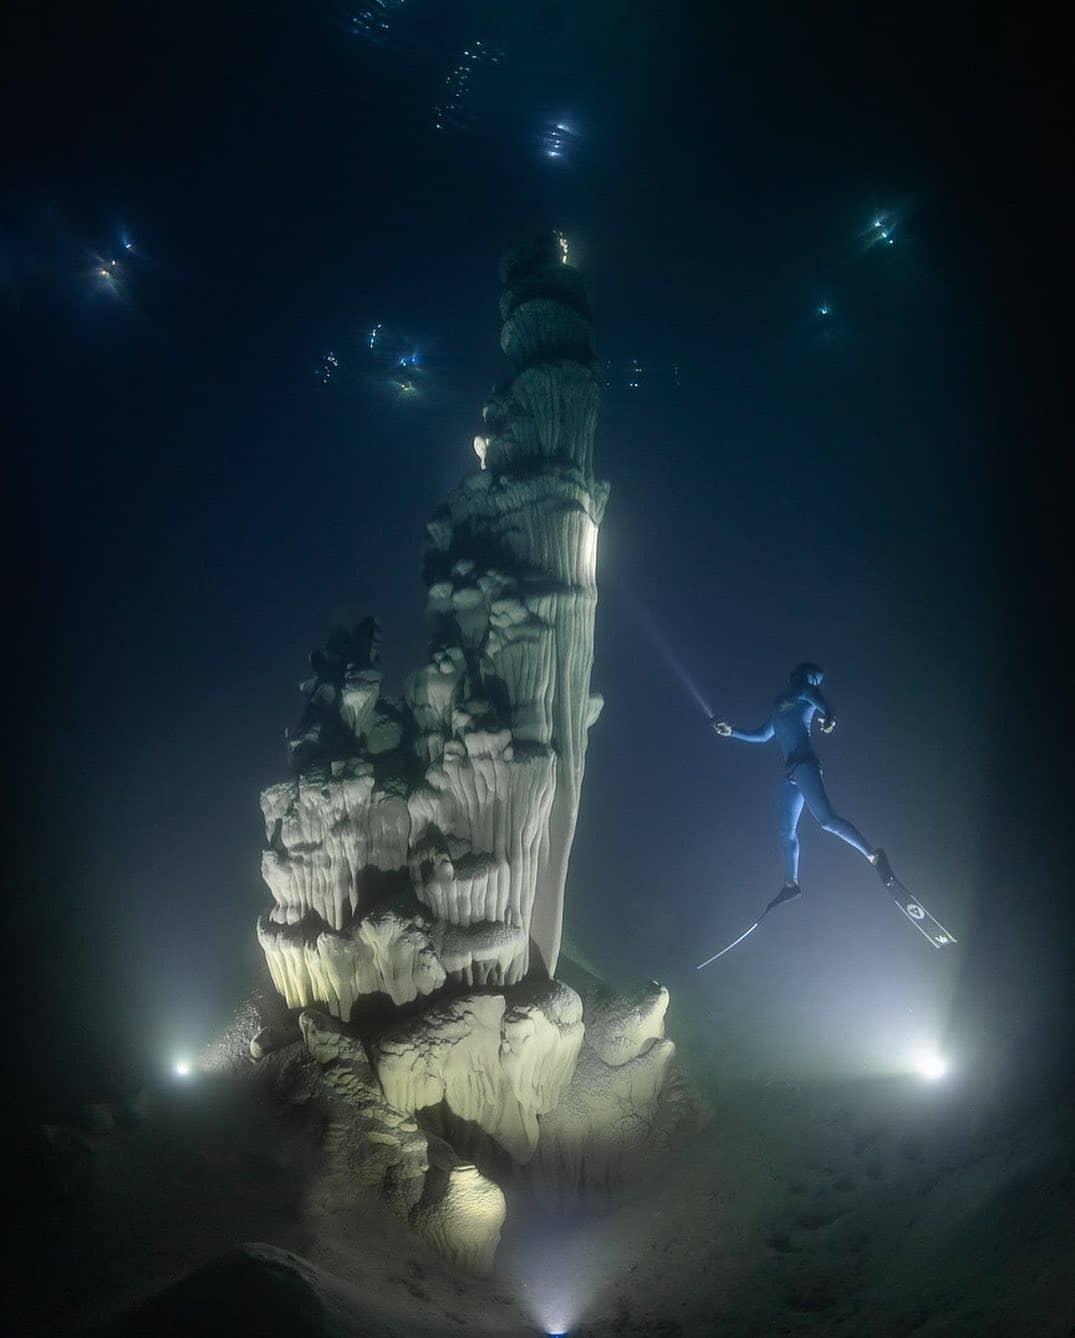 Underwater formation photo by Andre Musgrove with freediver Johnny Deep